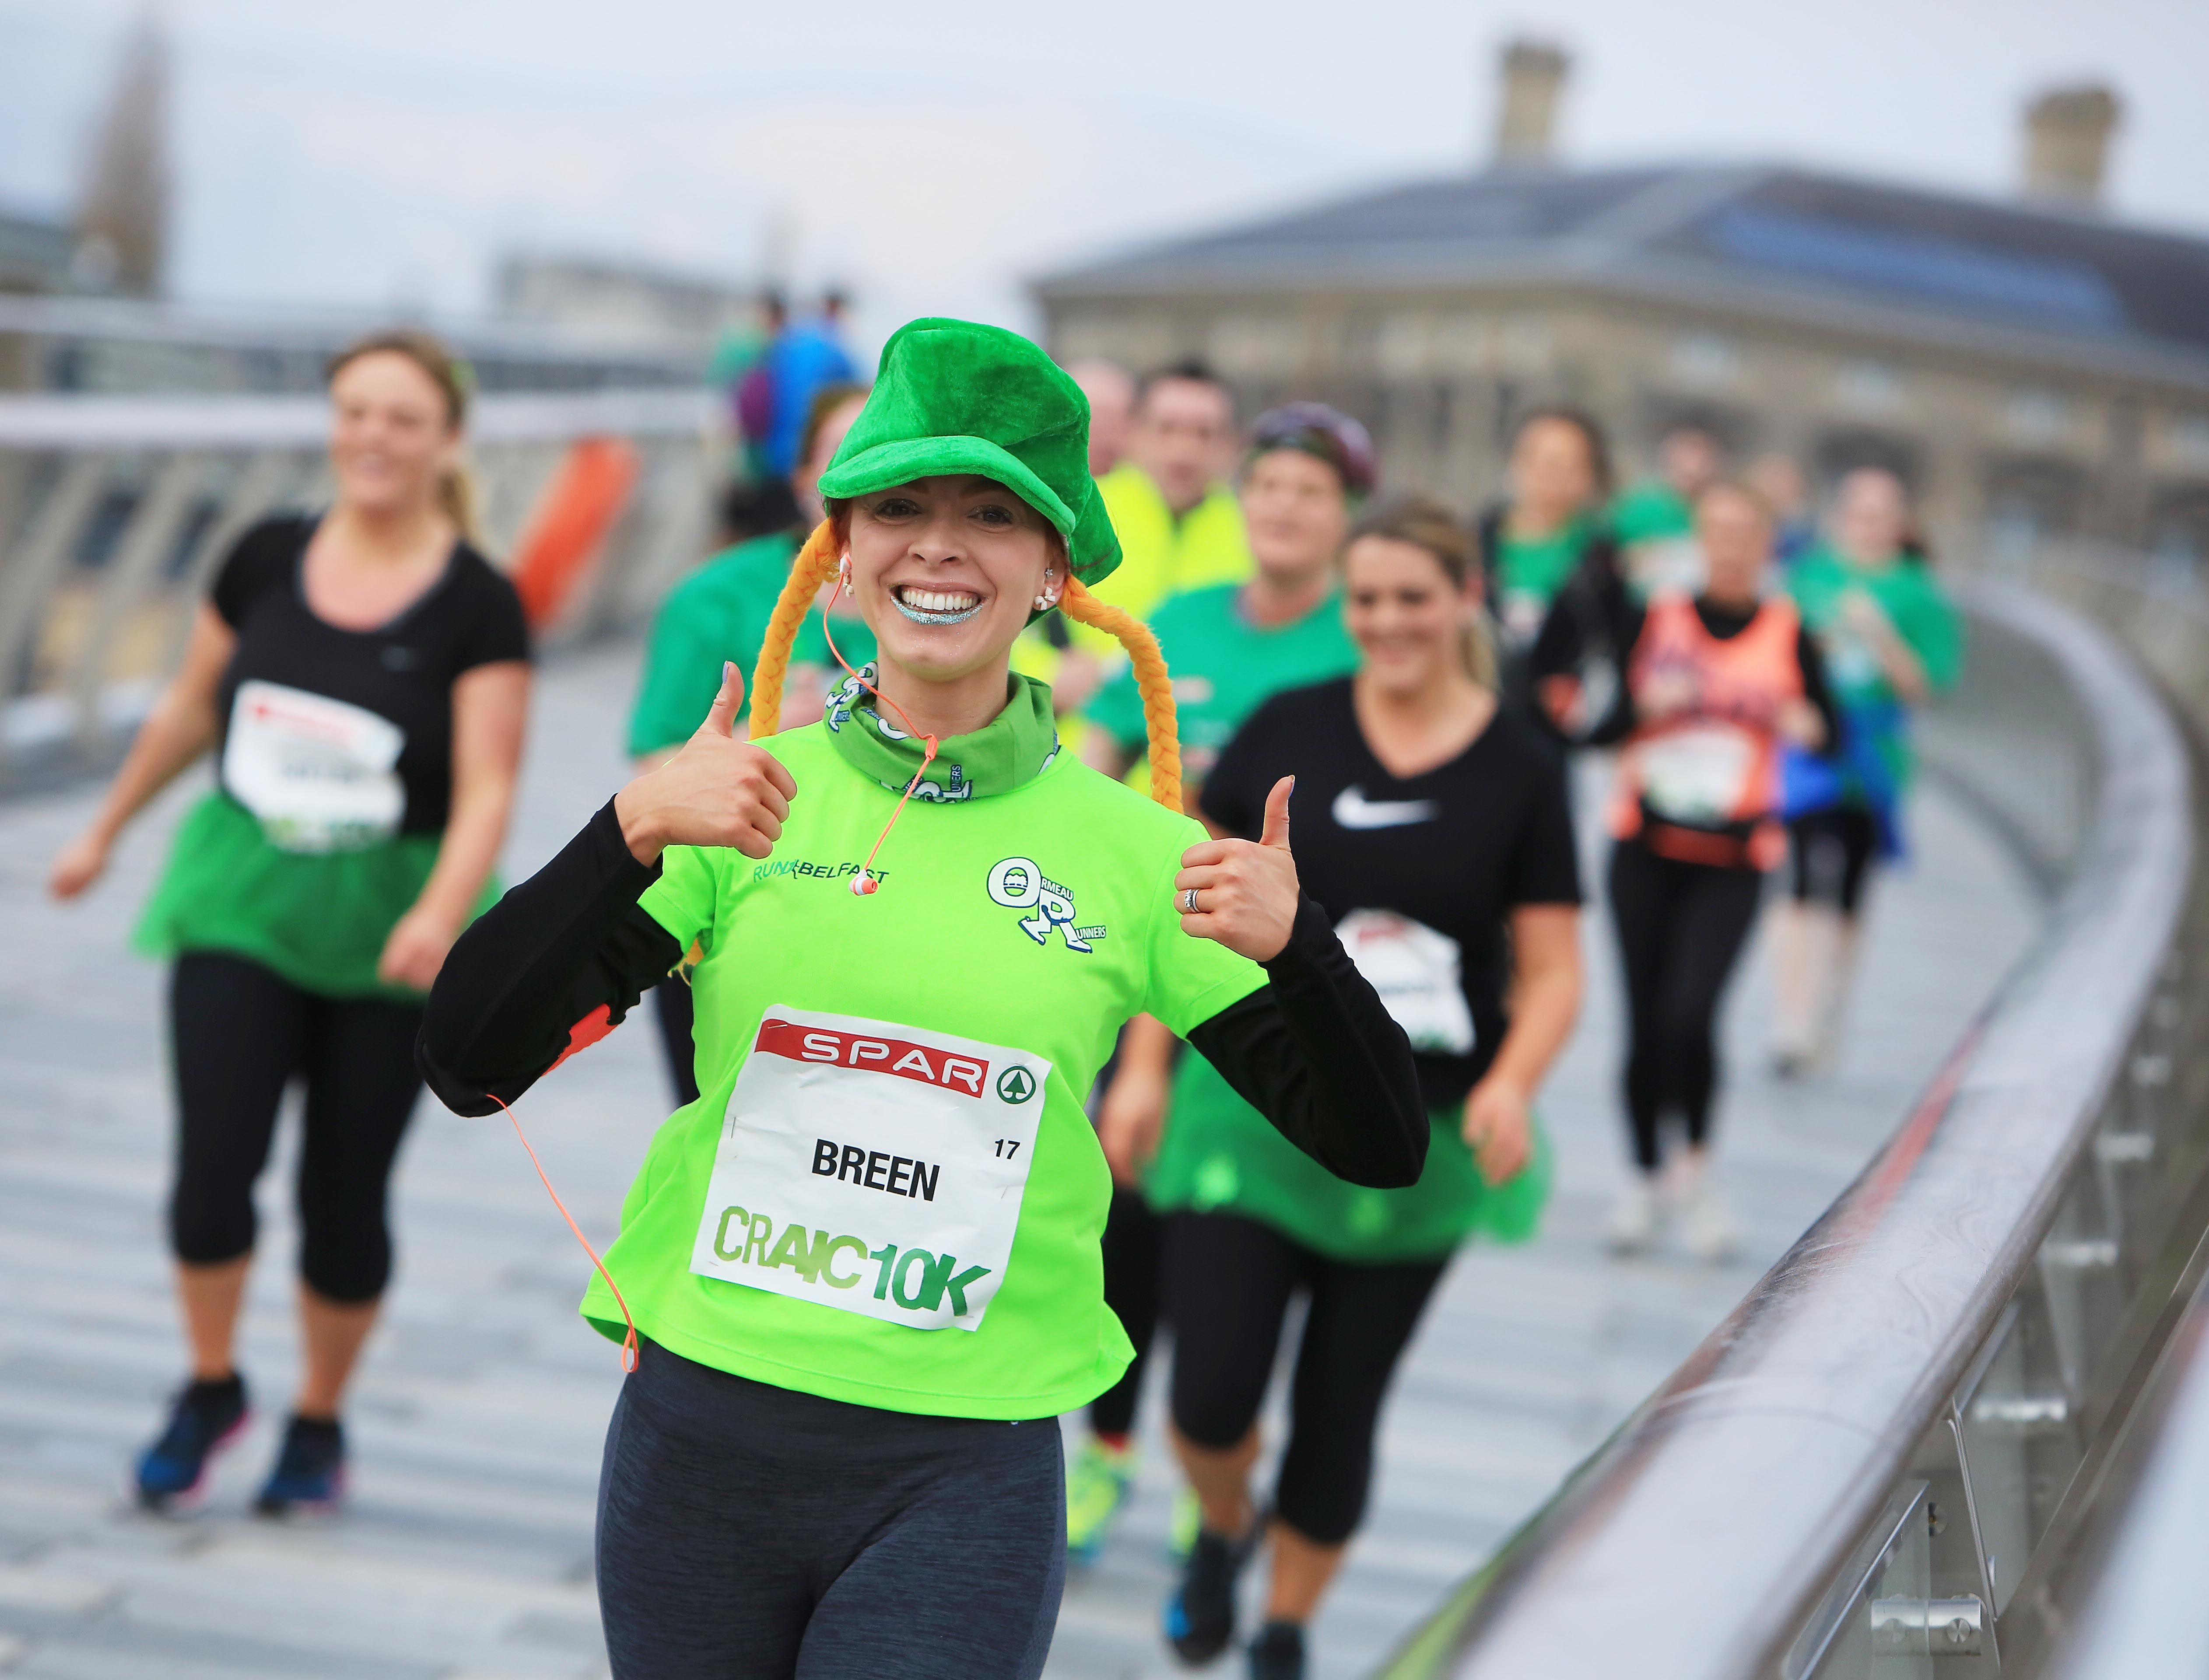 JOIN THE GLOBAL EVENT: You too could look the part on St Patrick's Day next month